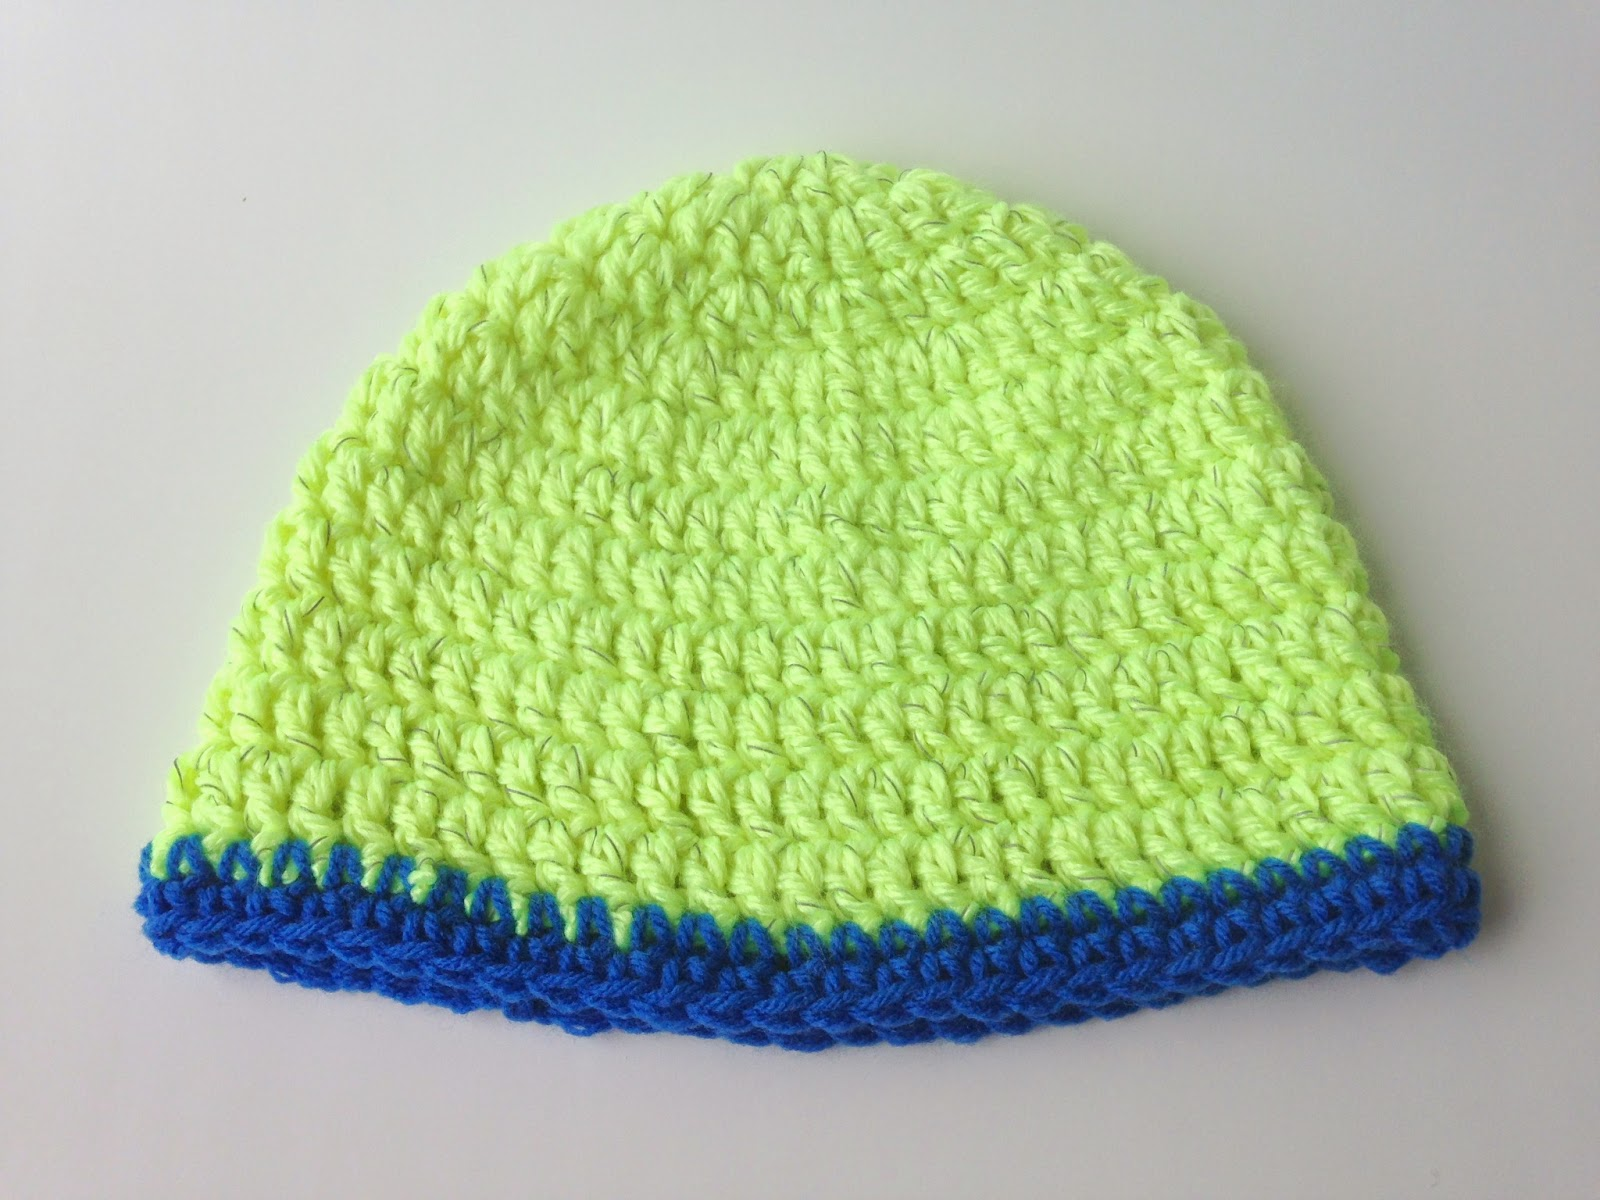 5 Little Monsters: New Hats for Christmas